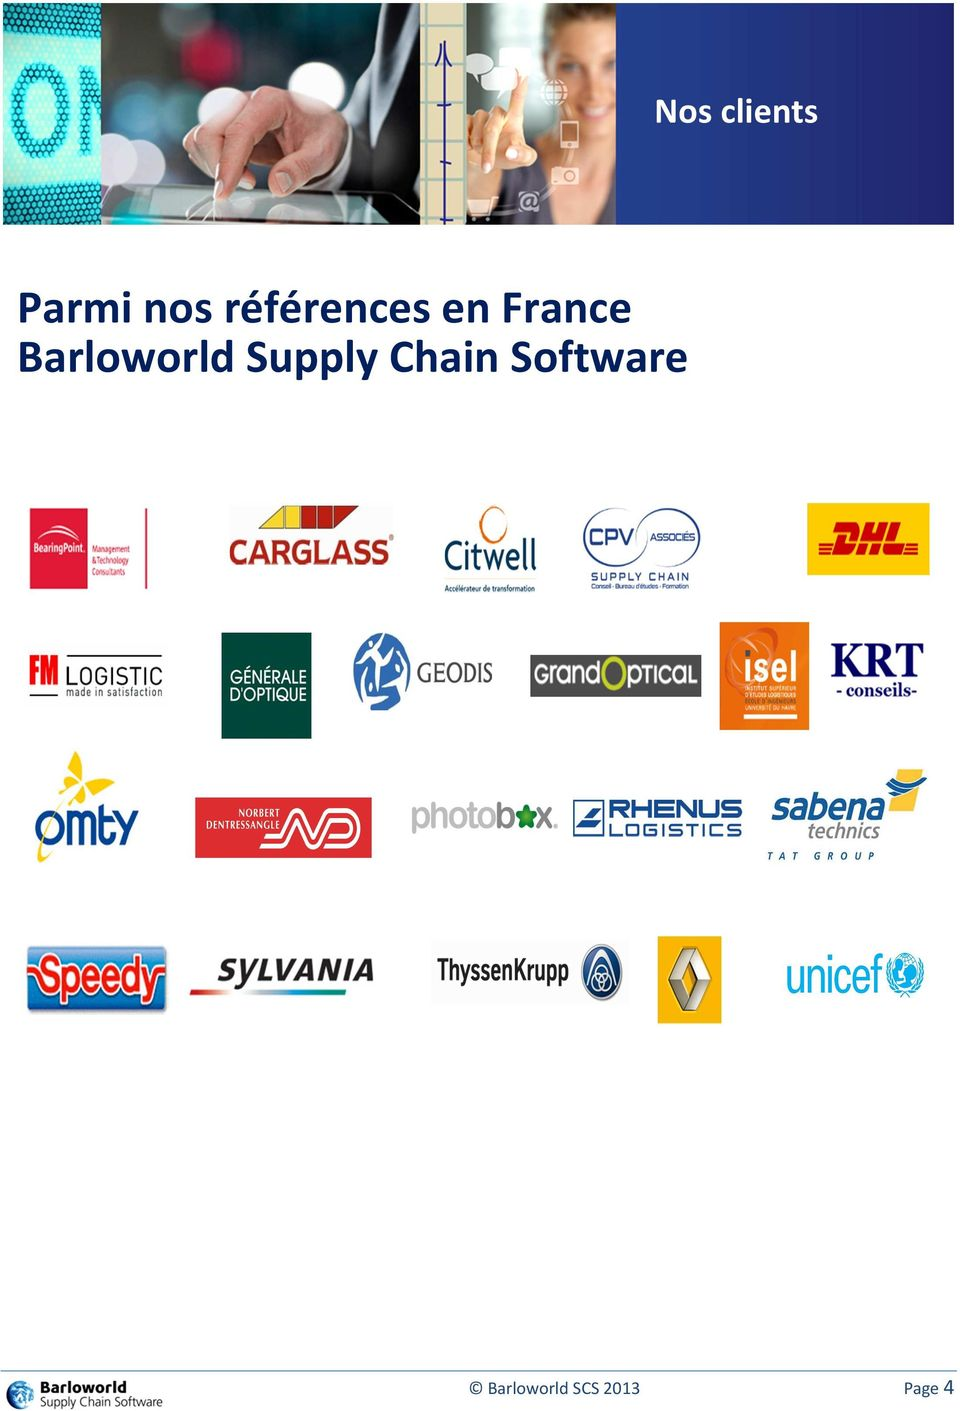 Barloworld Supply Chain